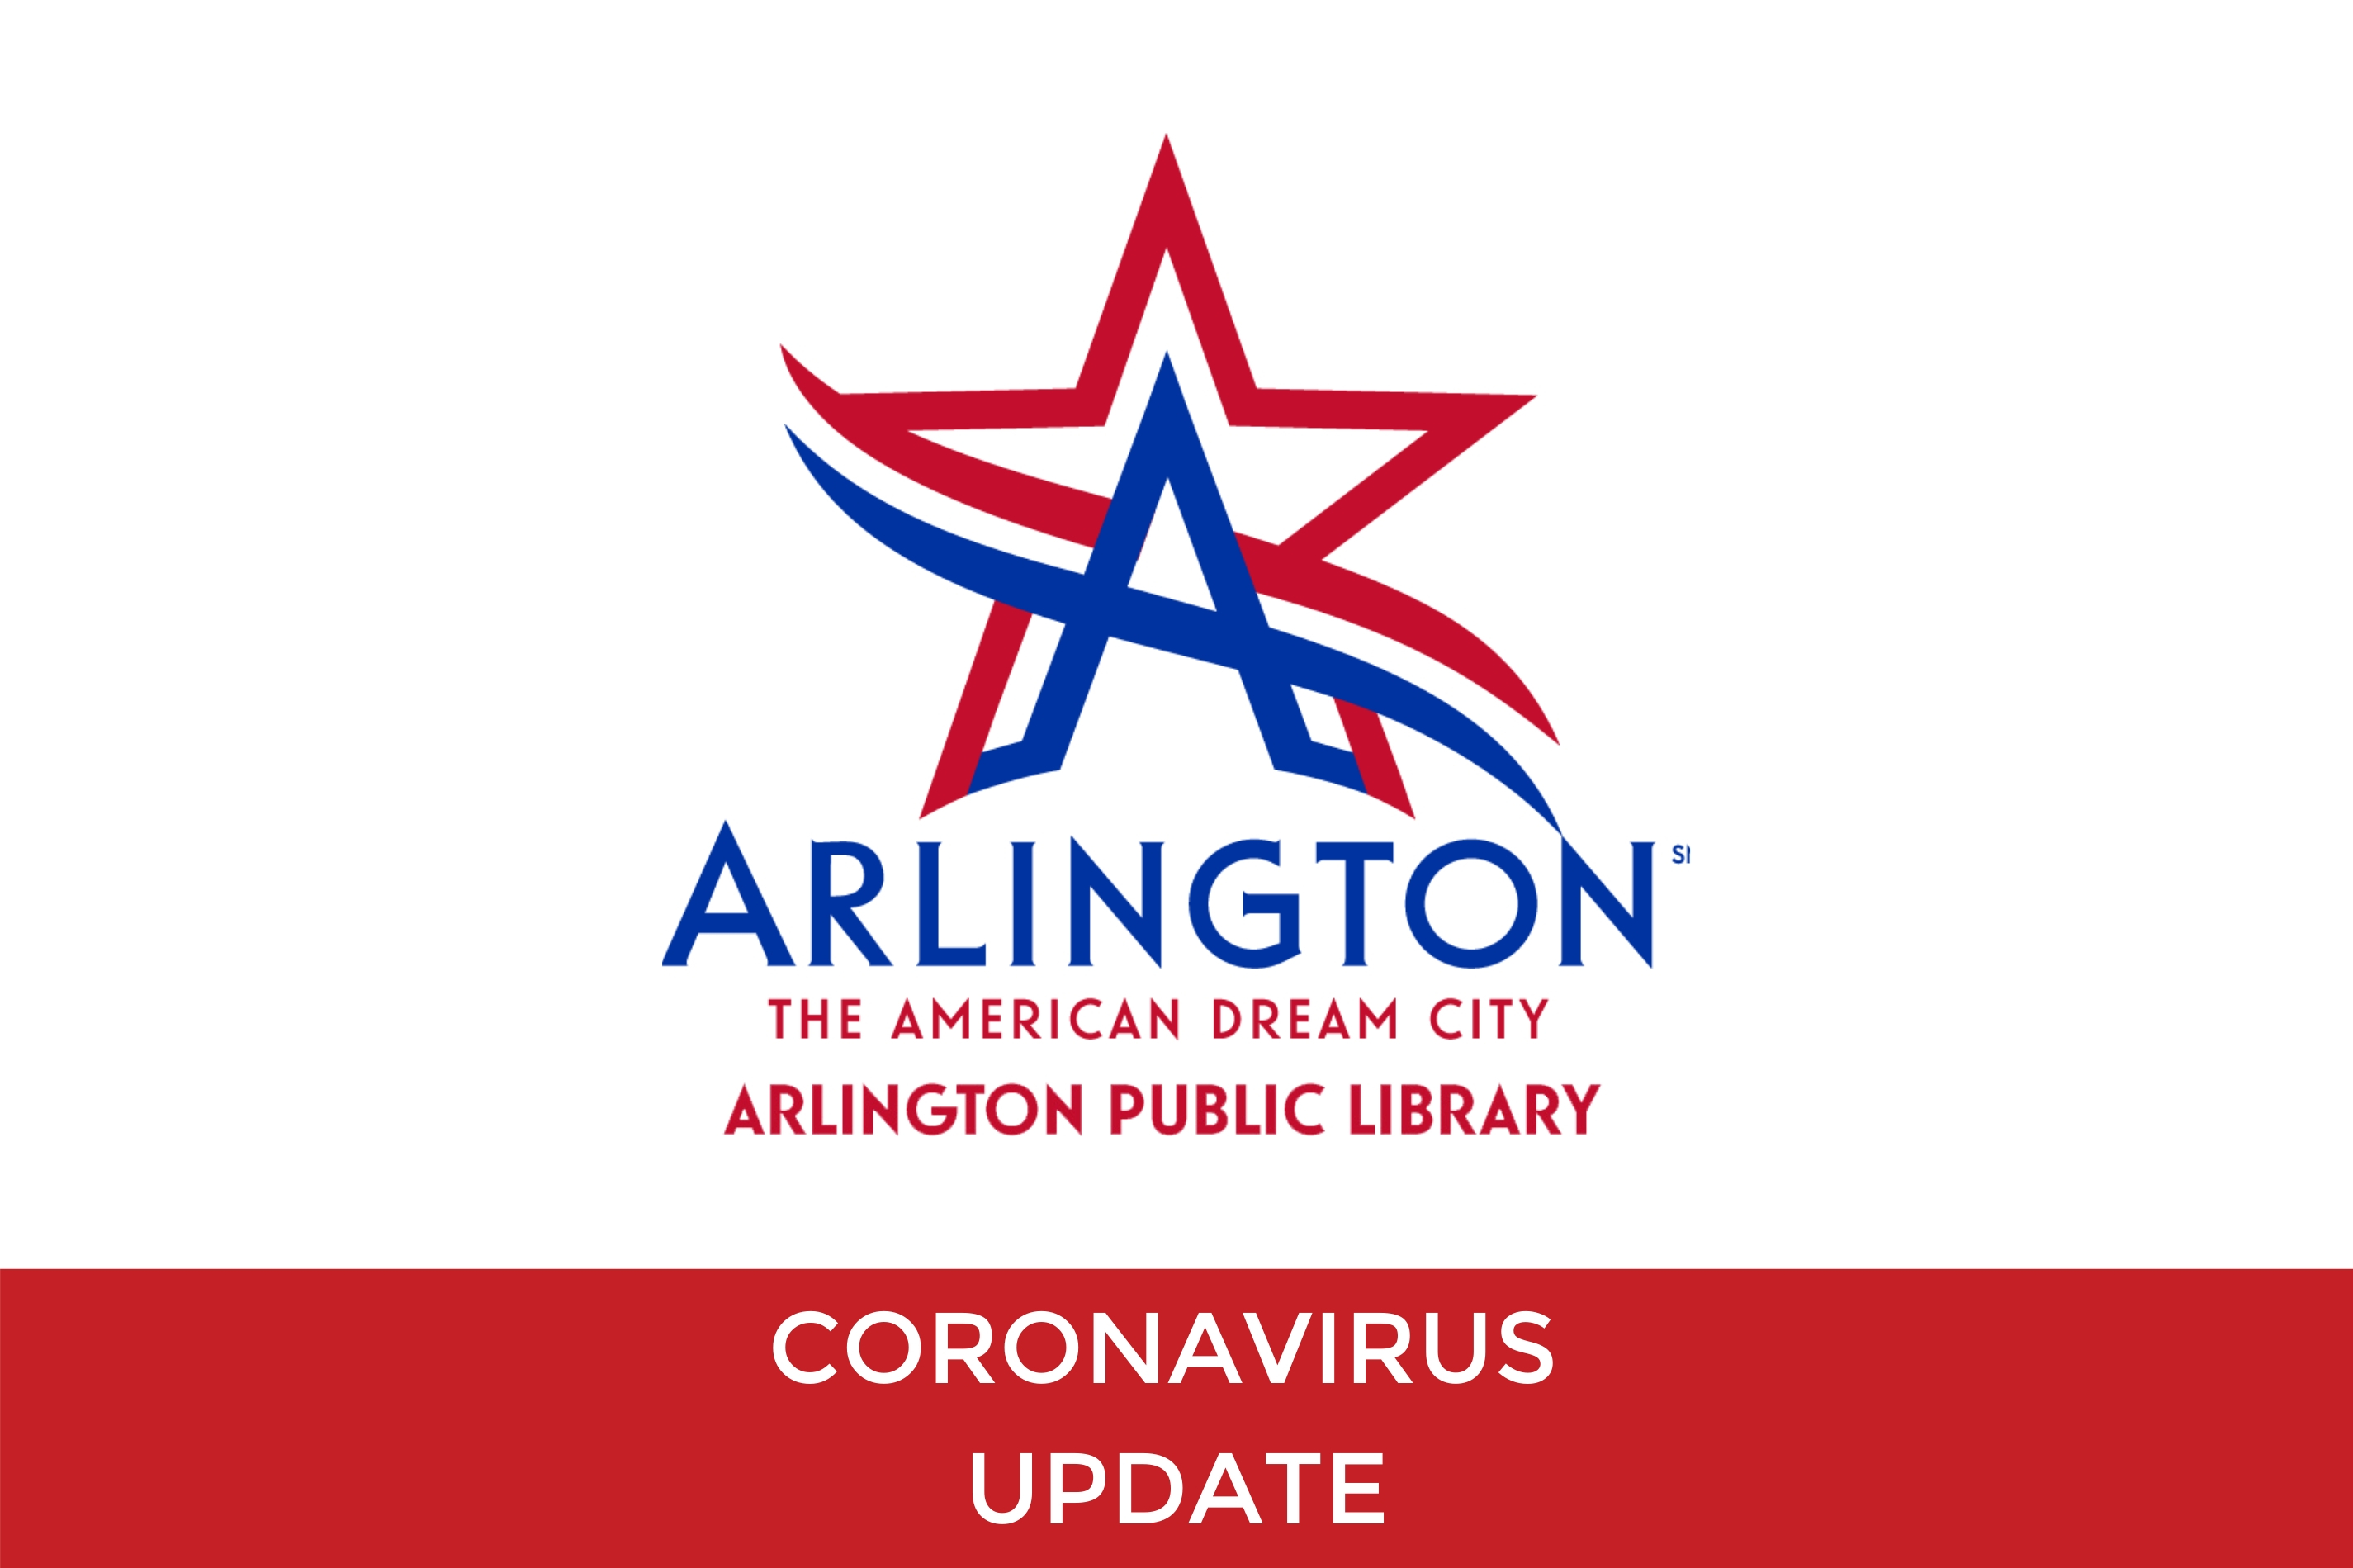 Arlington Public Library is CLOSED Until Further Notice